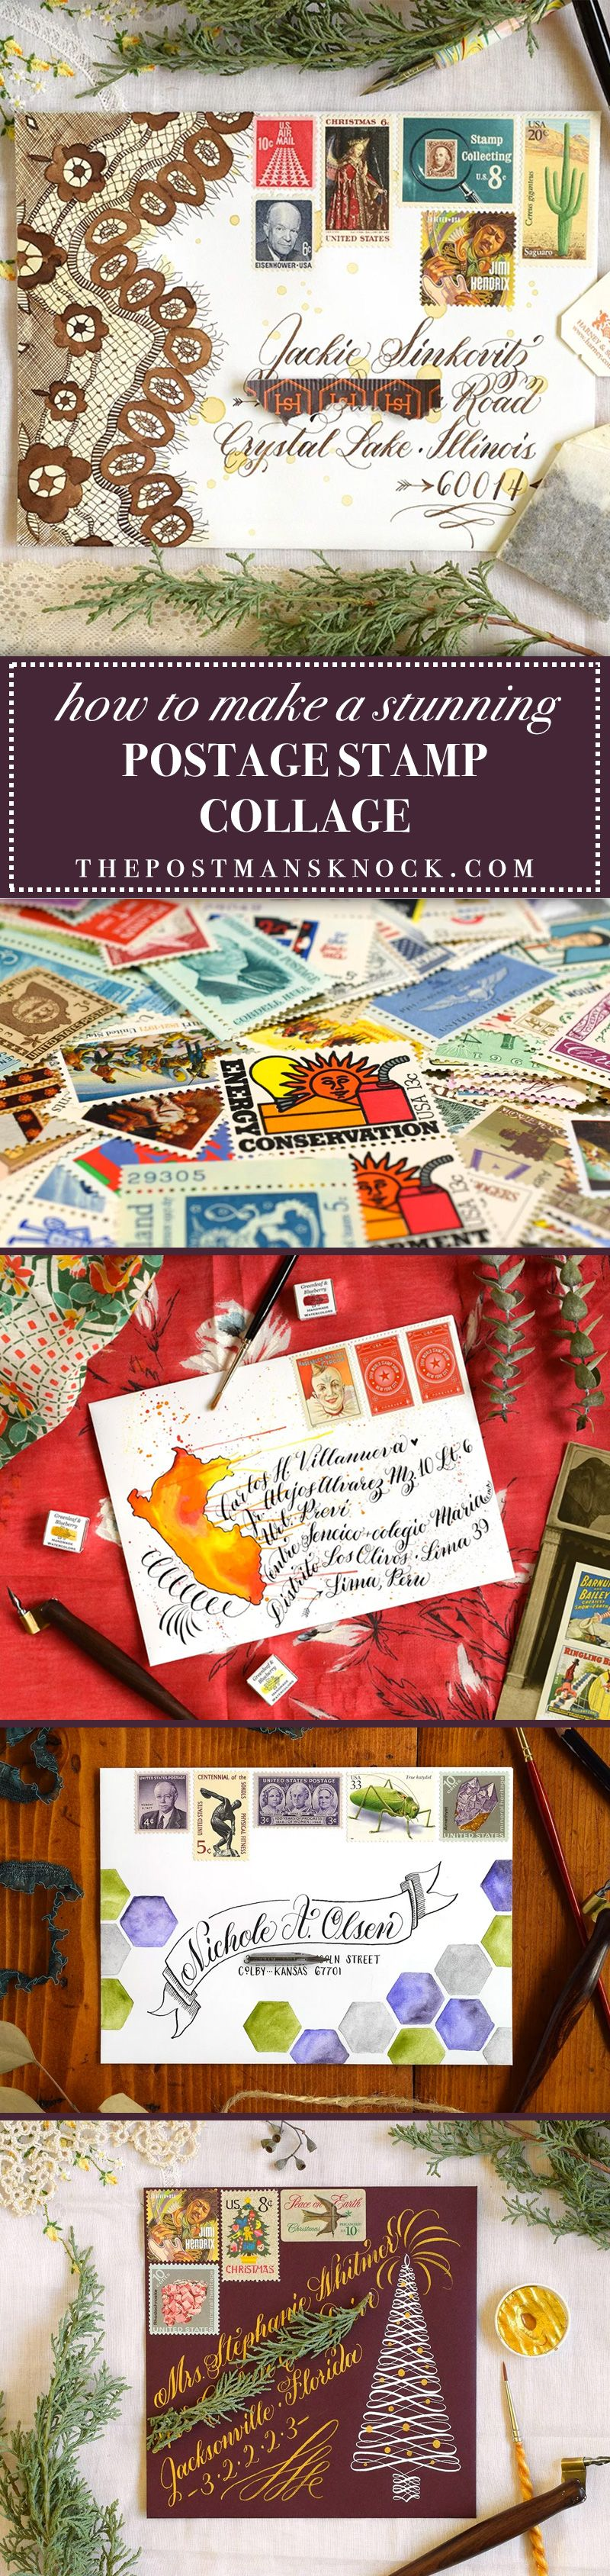 Where to buy stamps - How To Make A Stunning Postage Stamp Collage